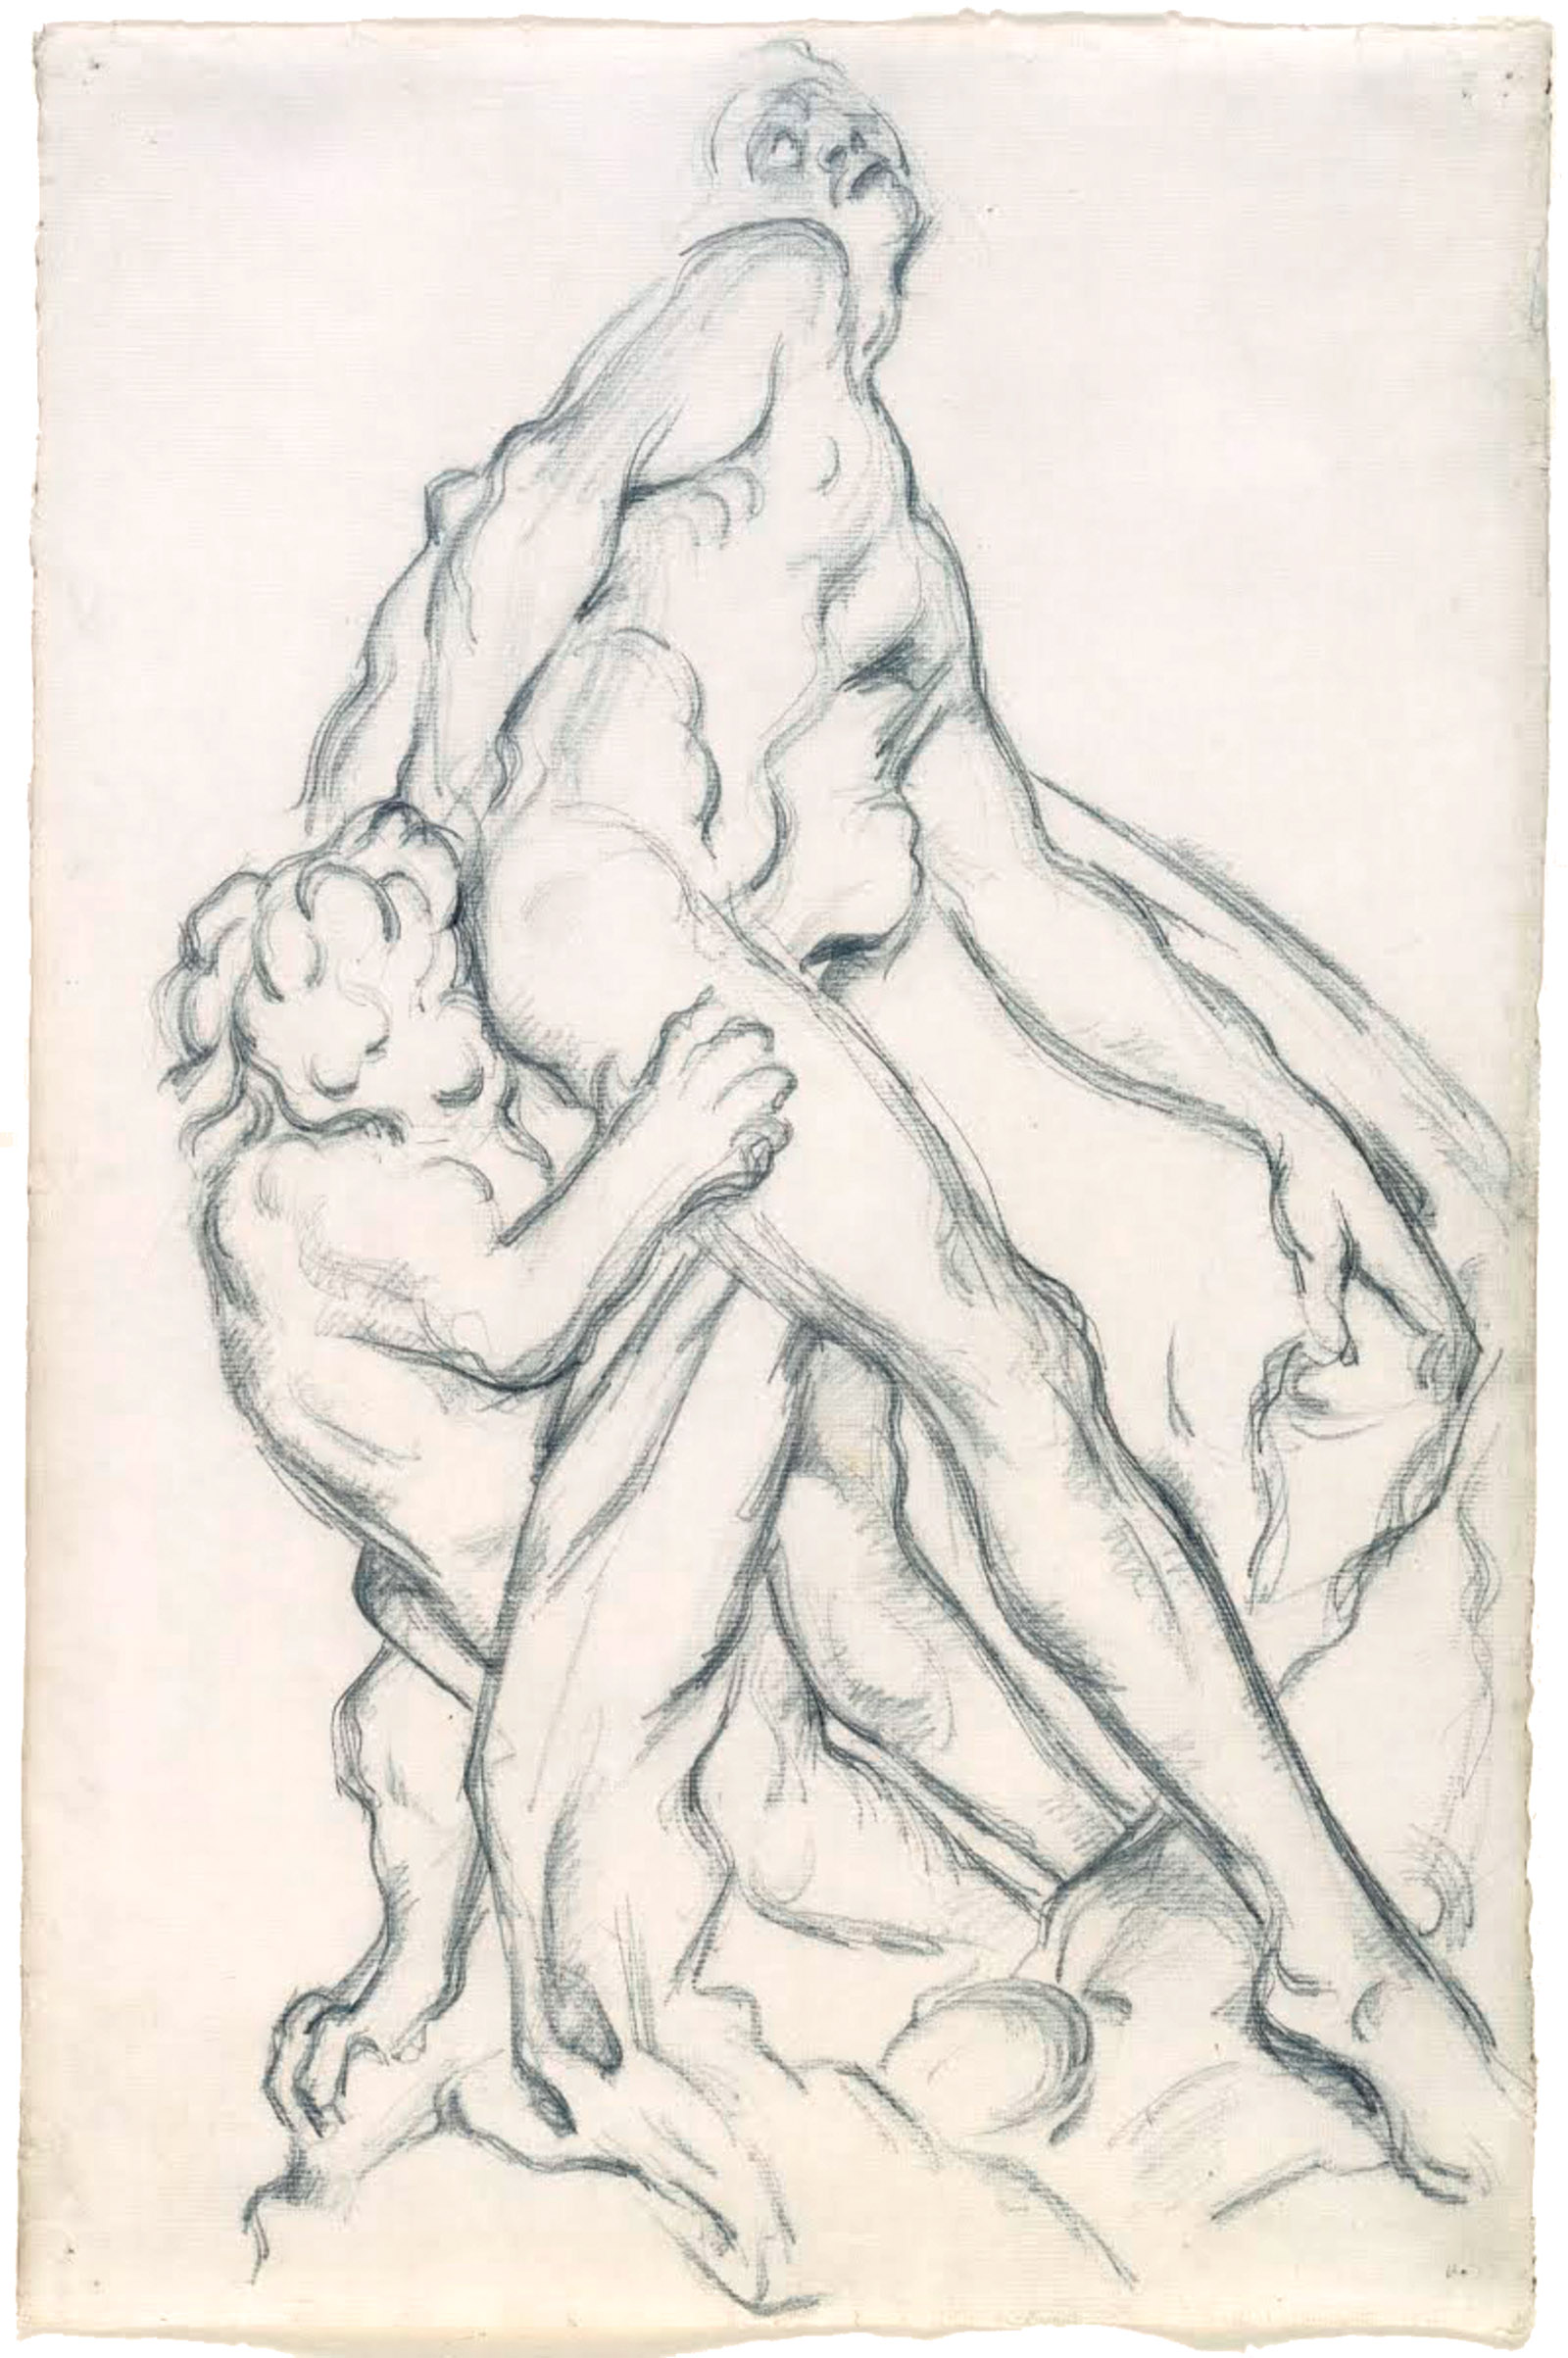 After Puget: Milo of Crotona; drawing by Paul Cézanne